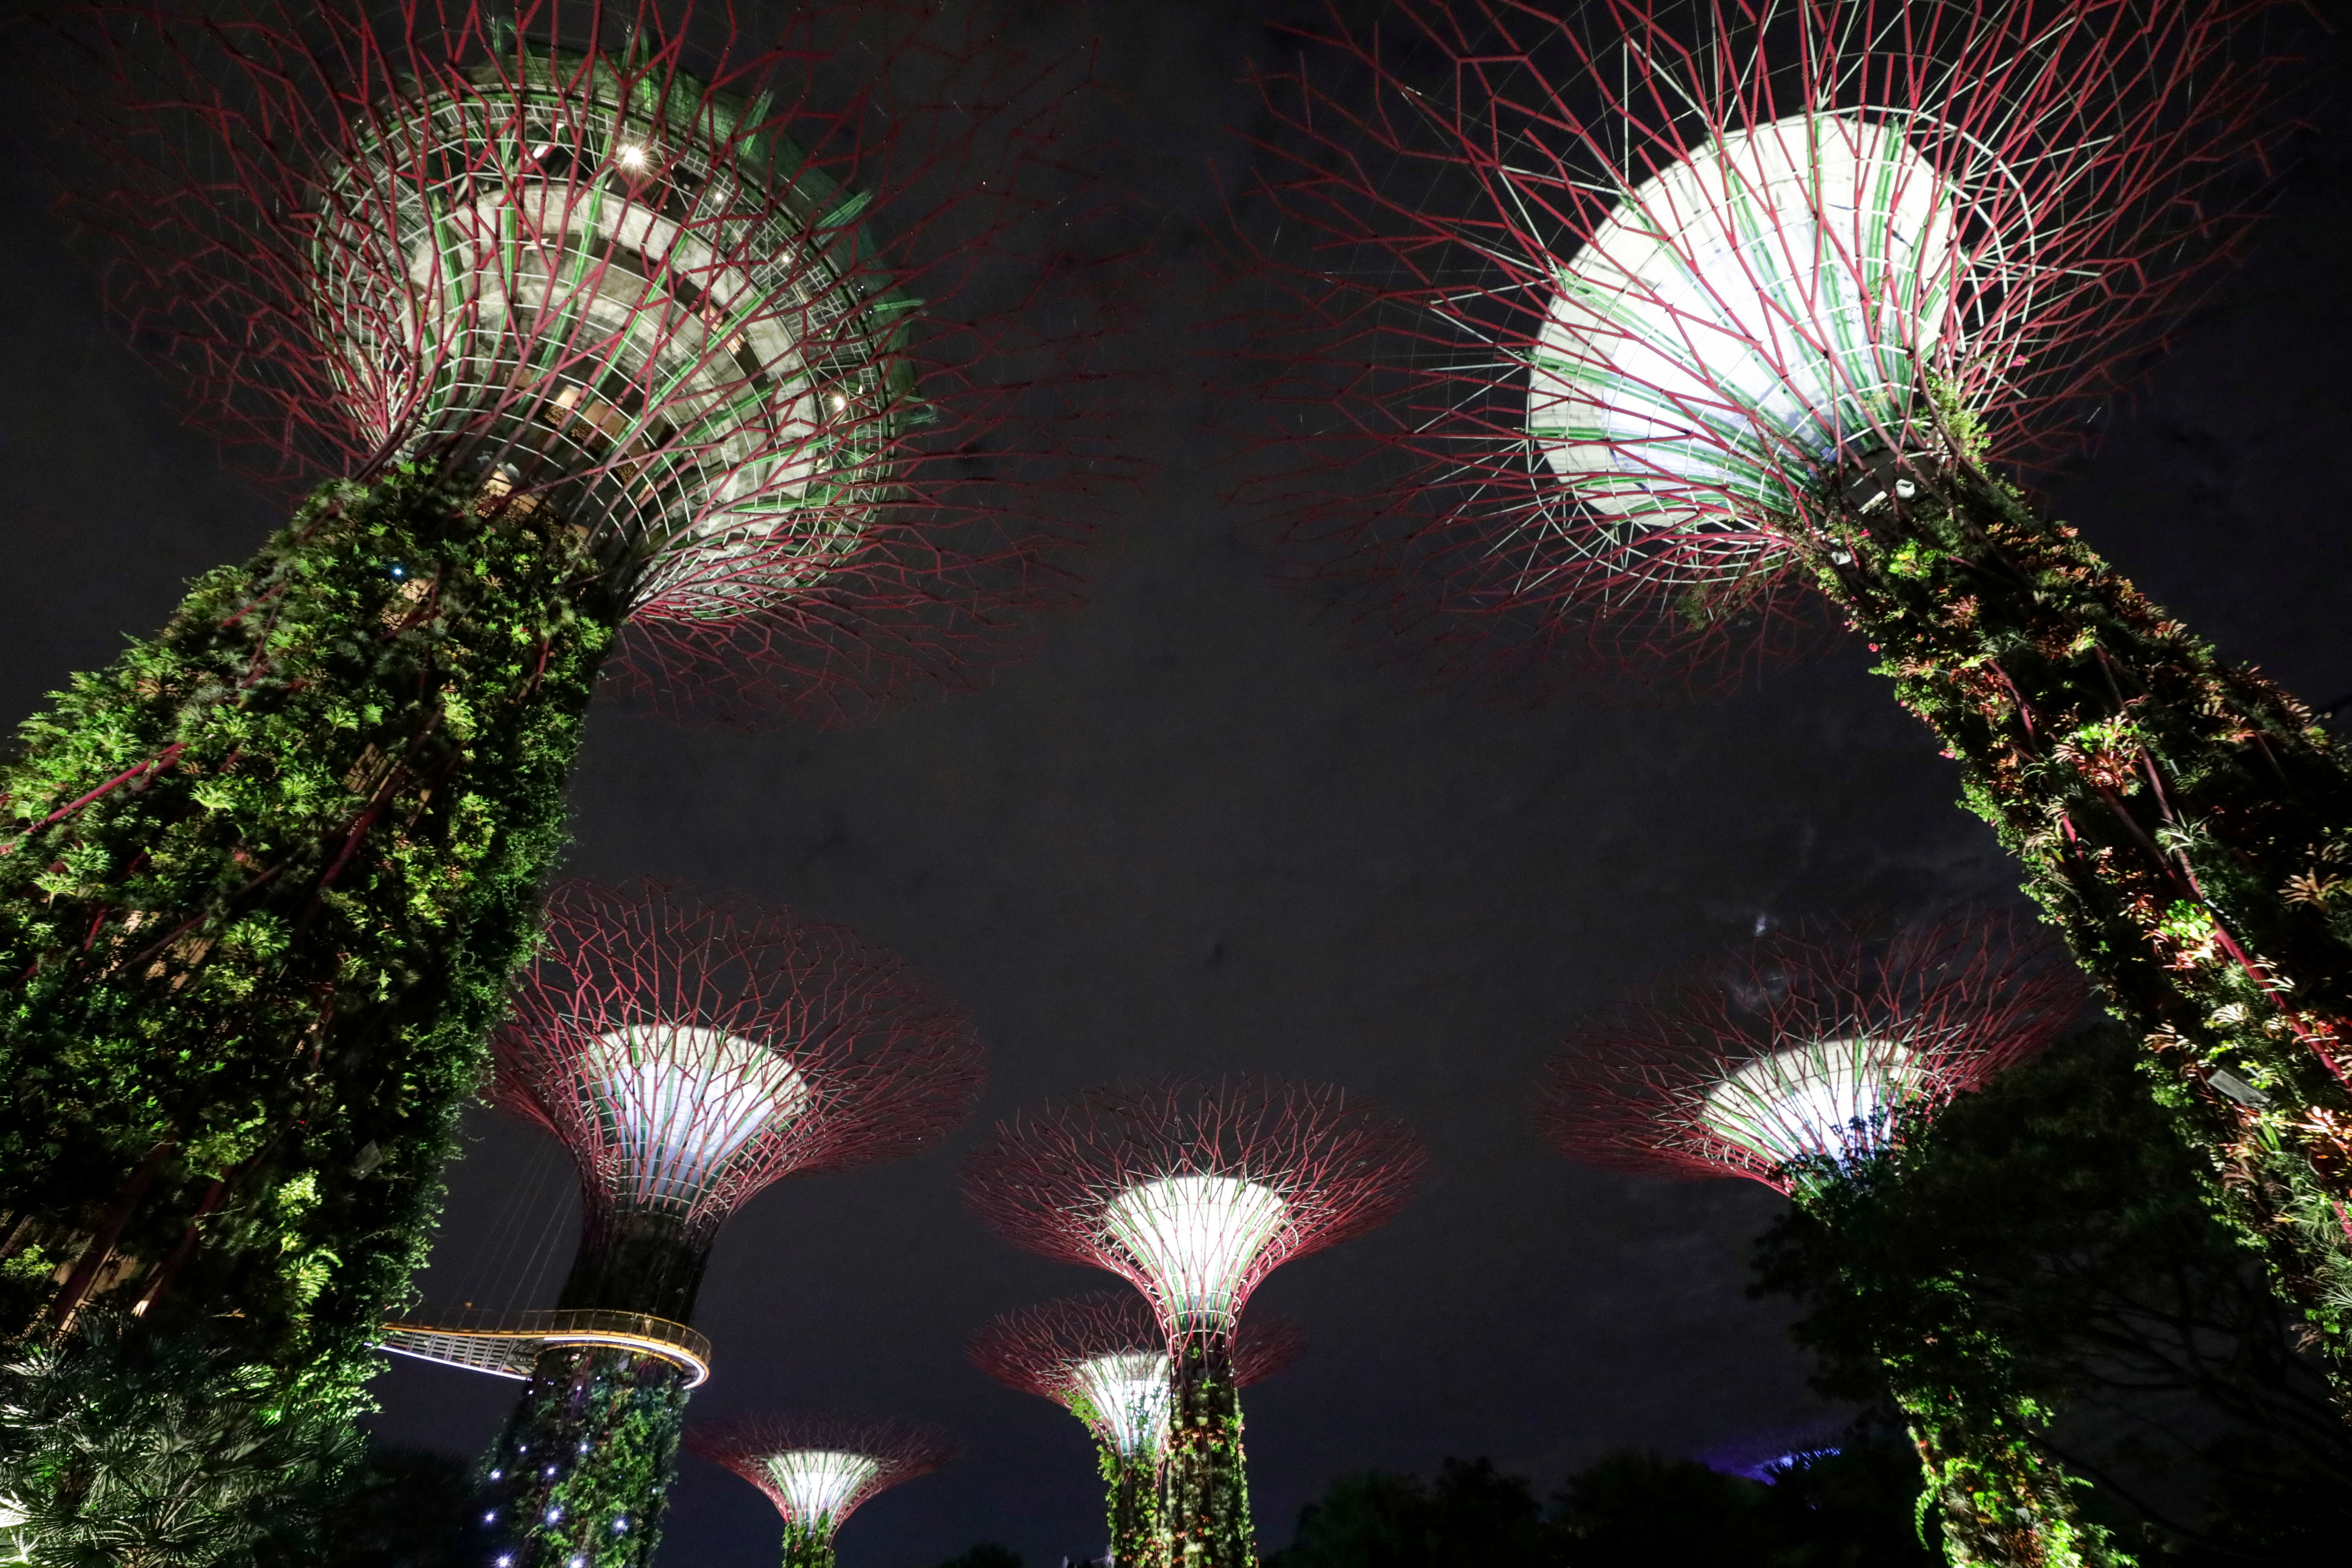 Artificial tree-like structures called Supertrees are seen before lights were switched off to commemorate Earth Hour, at Gardens By the Bay, in Singapore, March 27, 2021. REUTERS/Dawn Chua/File Photo